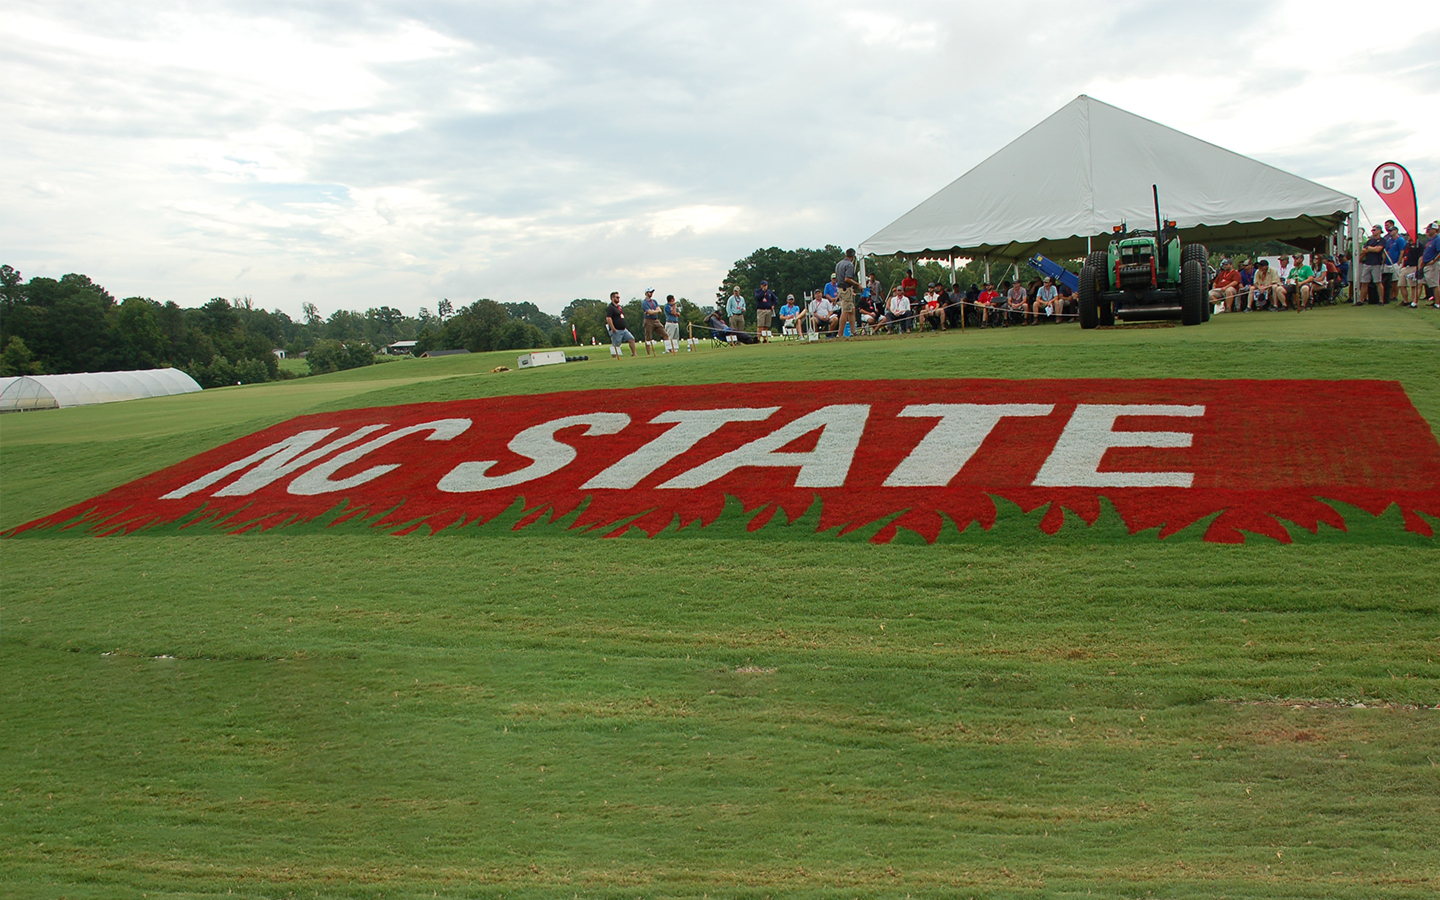 NC State logo on turf